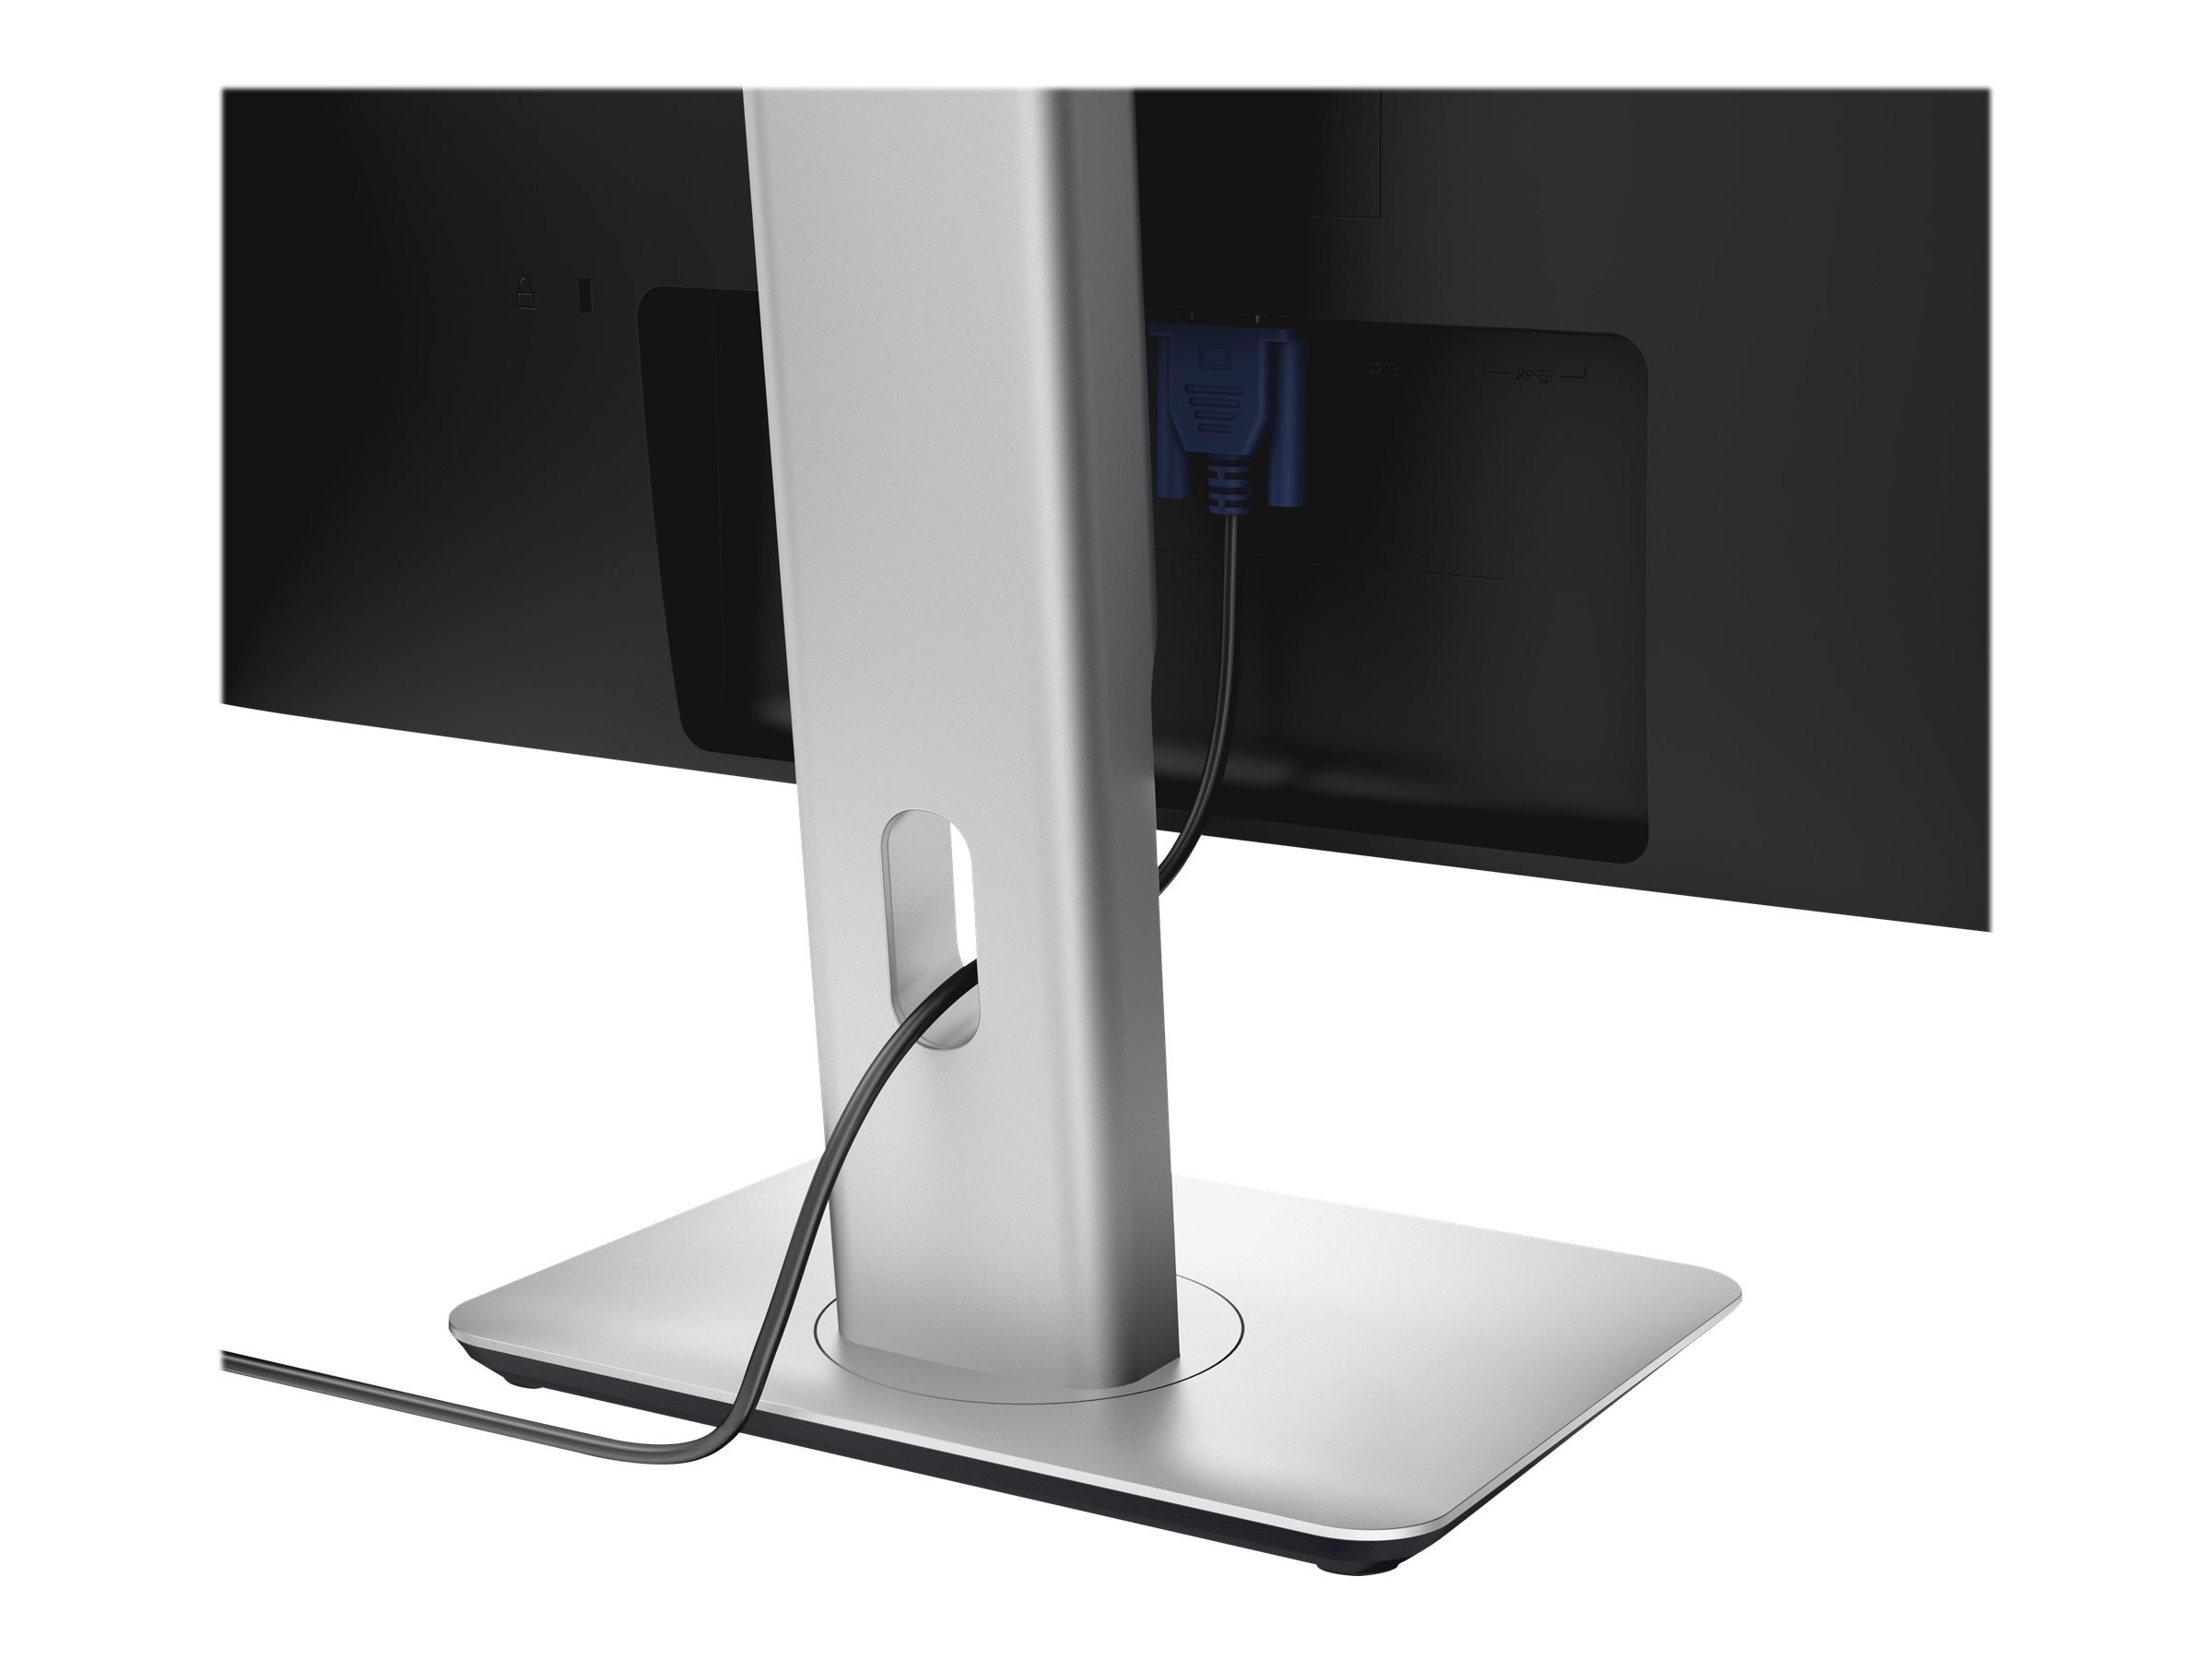 Dell Ultrasharp UZ2315H 23-Inch Screen LED-Lit Full HD Monitor with Webcam and Speakers by Dell (Image #12)